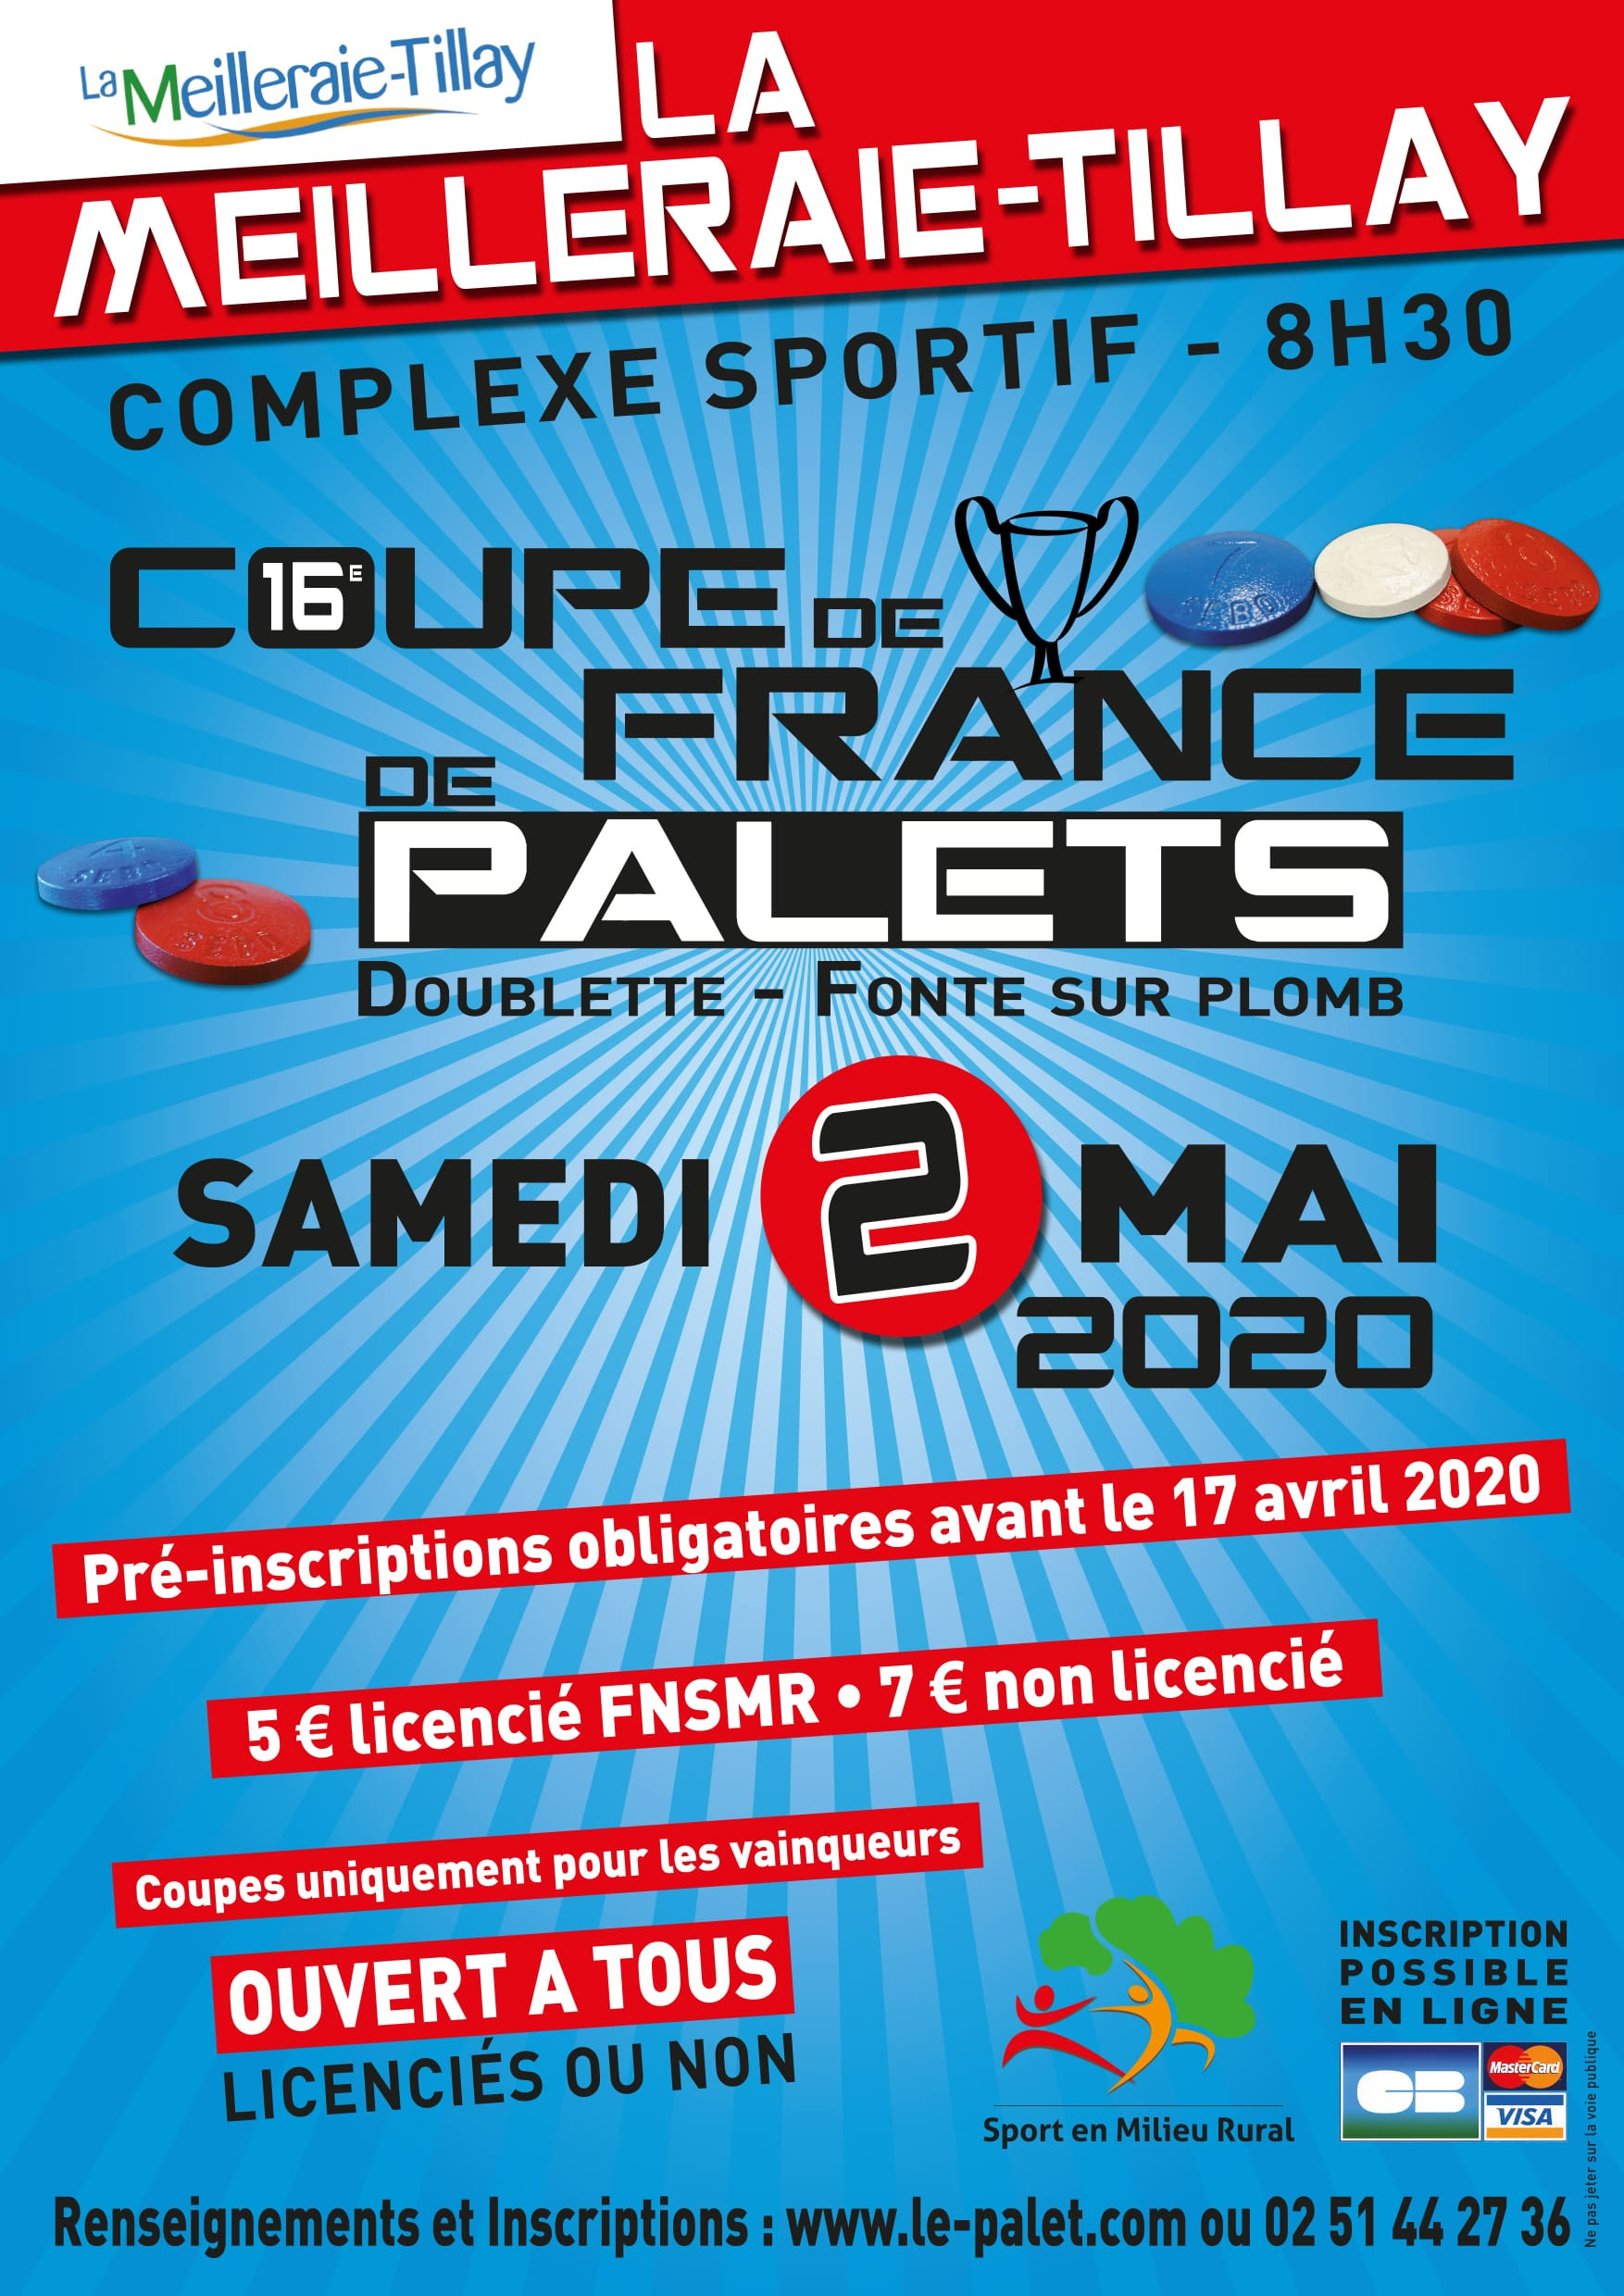 Coupe de France Palet fonte 2020 – ANNULATION